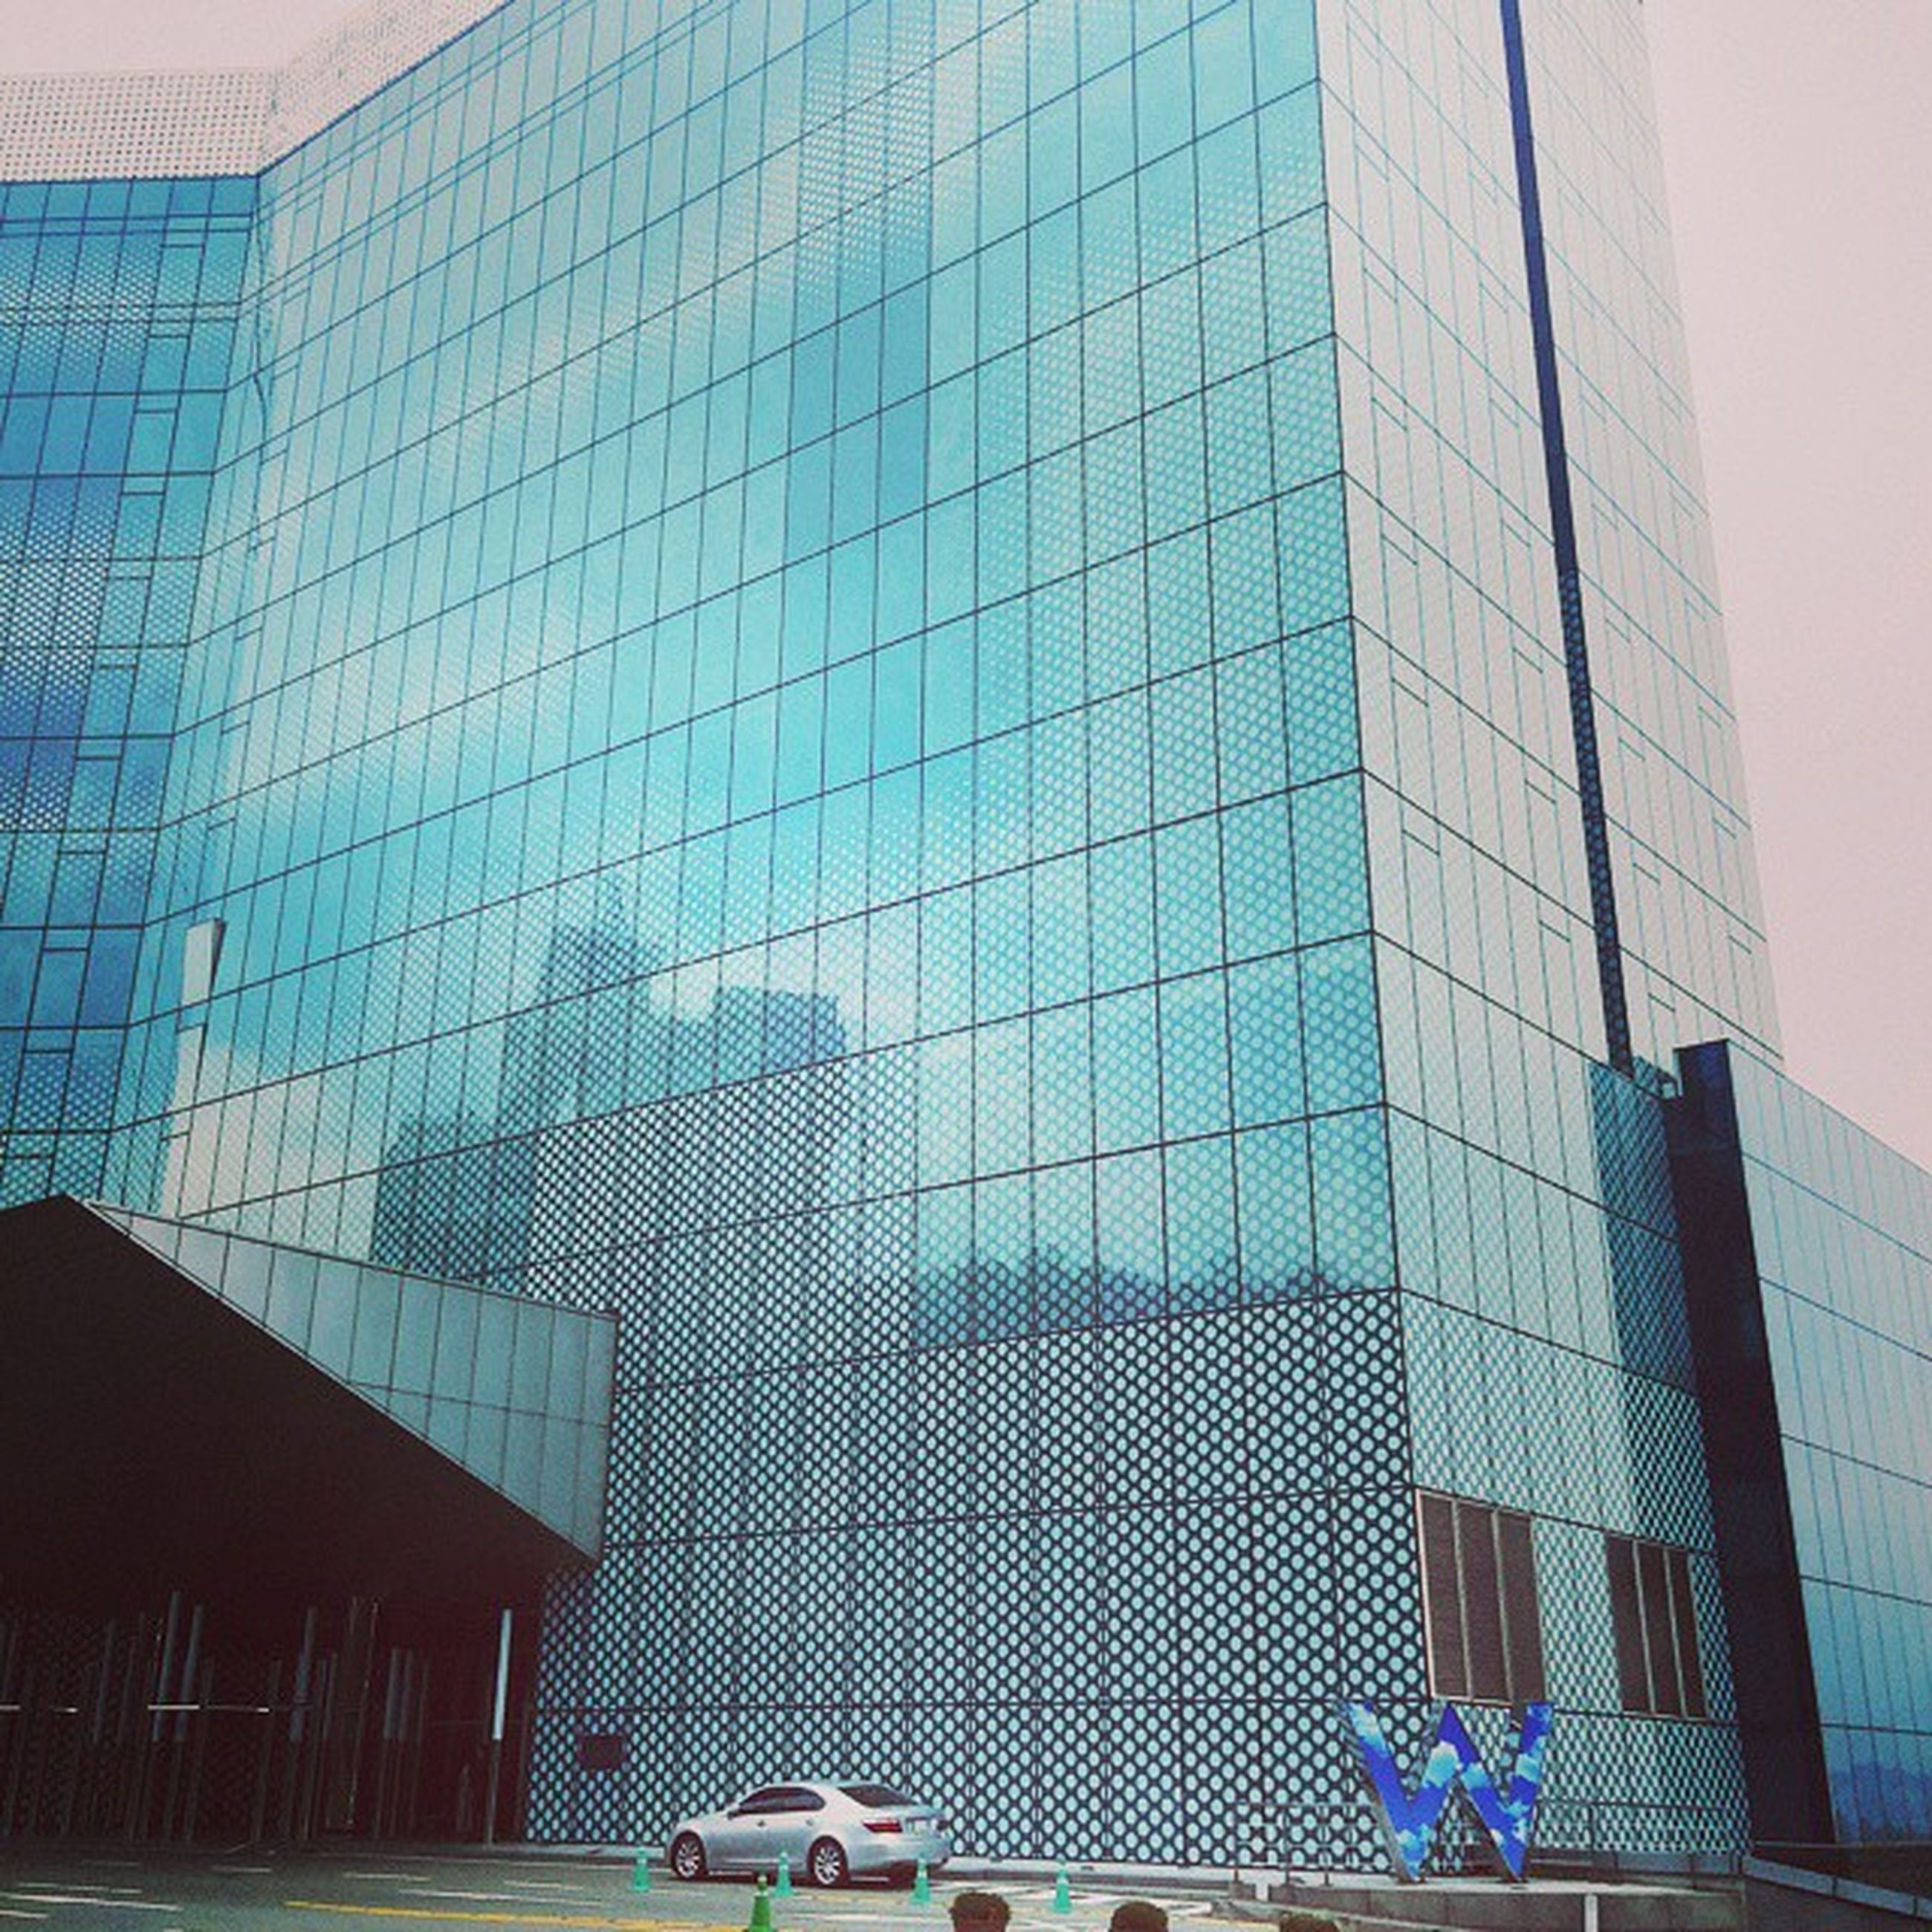 architecture, building exterior, built structure, city, modern, office building, low angle view, glass - material, building, skyscraper, tall - high, sky, tower, window, day, city life, no people, outdoors, reflection, blue